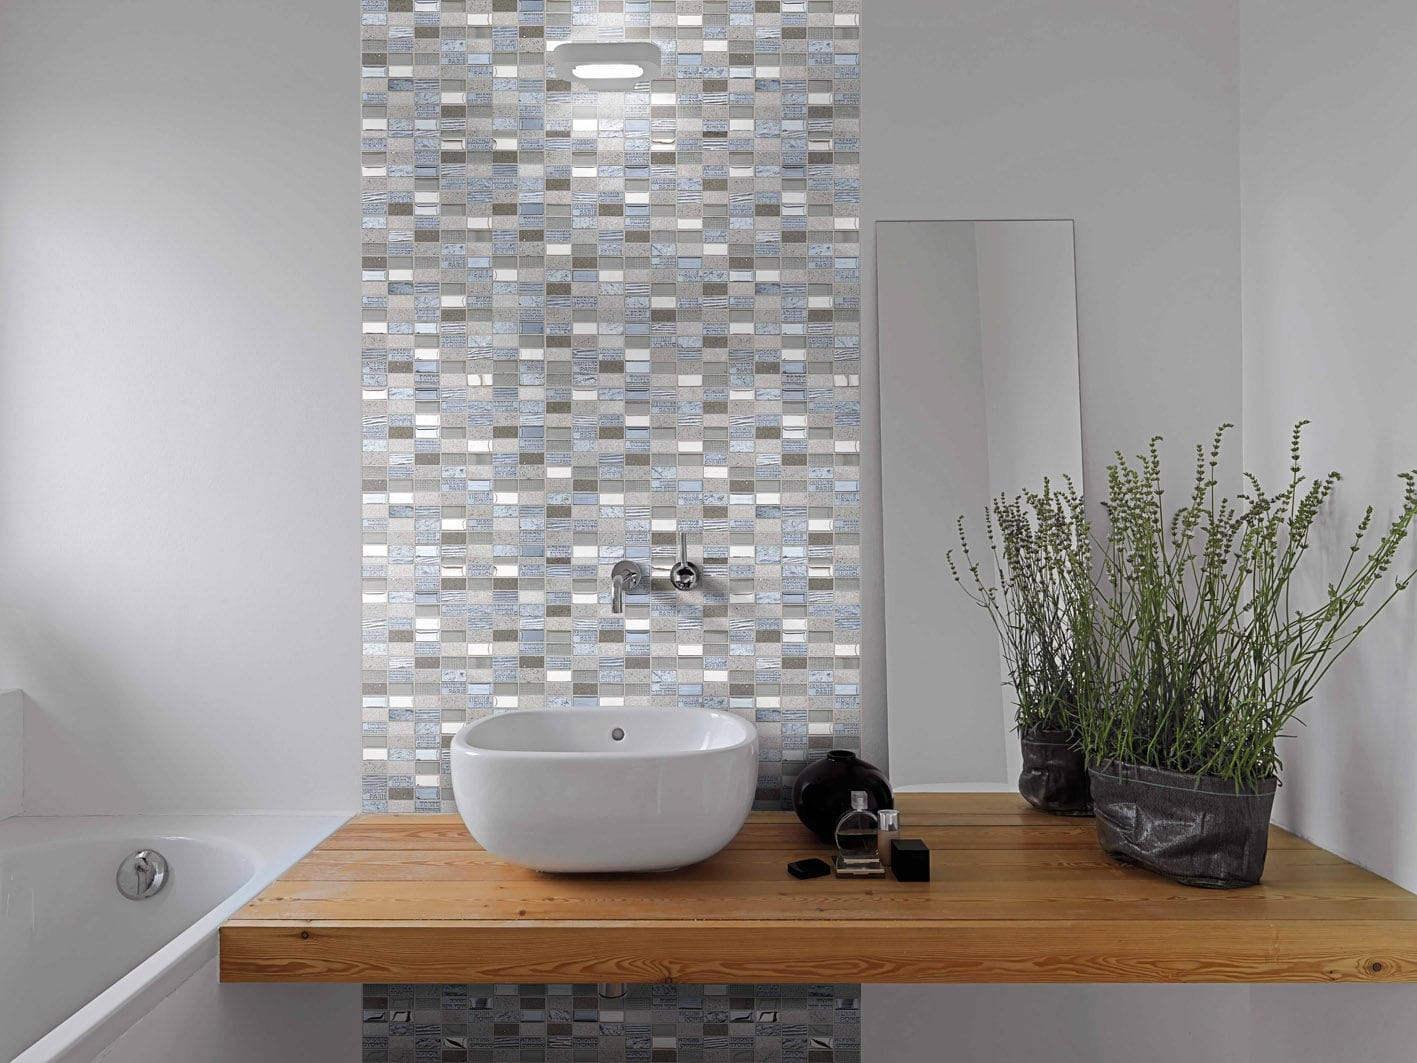 ... Bathroom Mosaic Tile / Kitchen / Wall / Marble